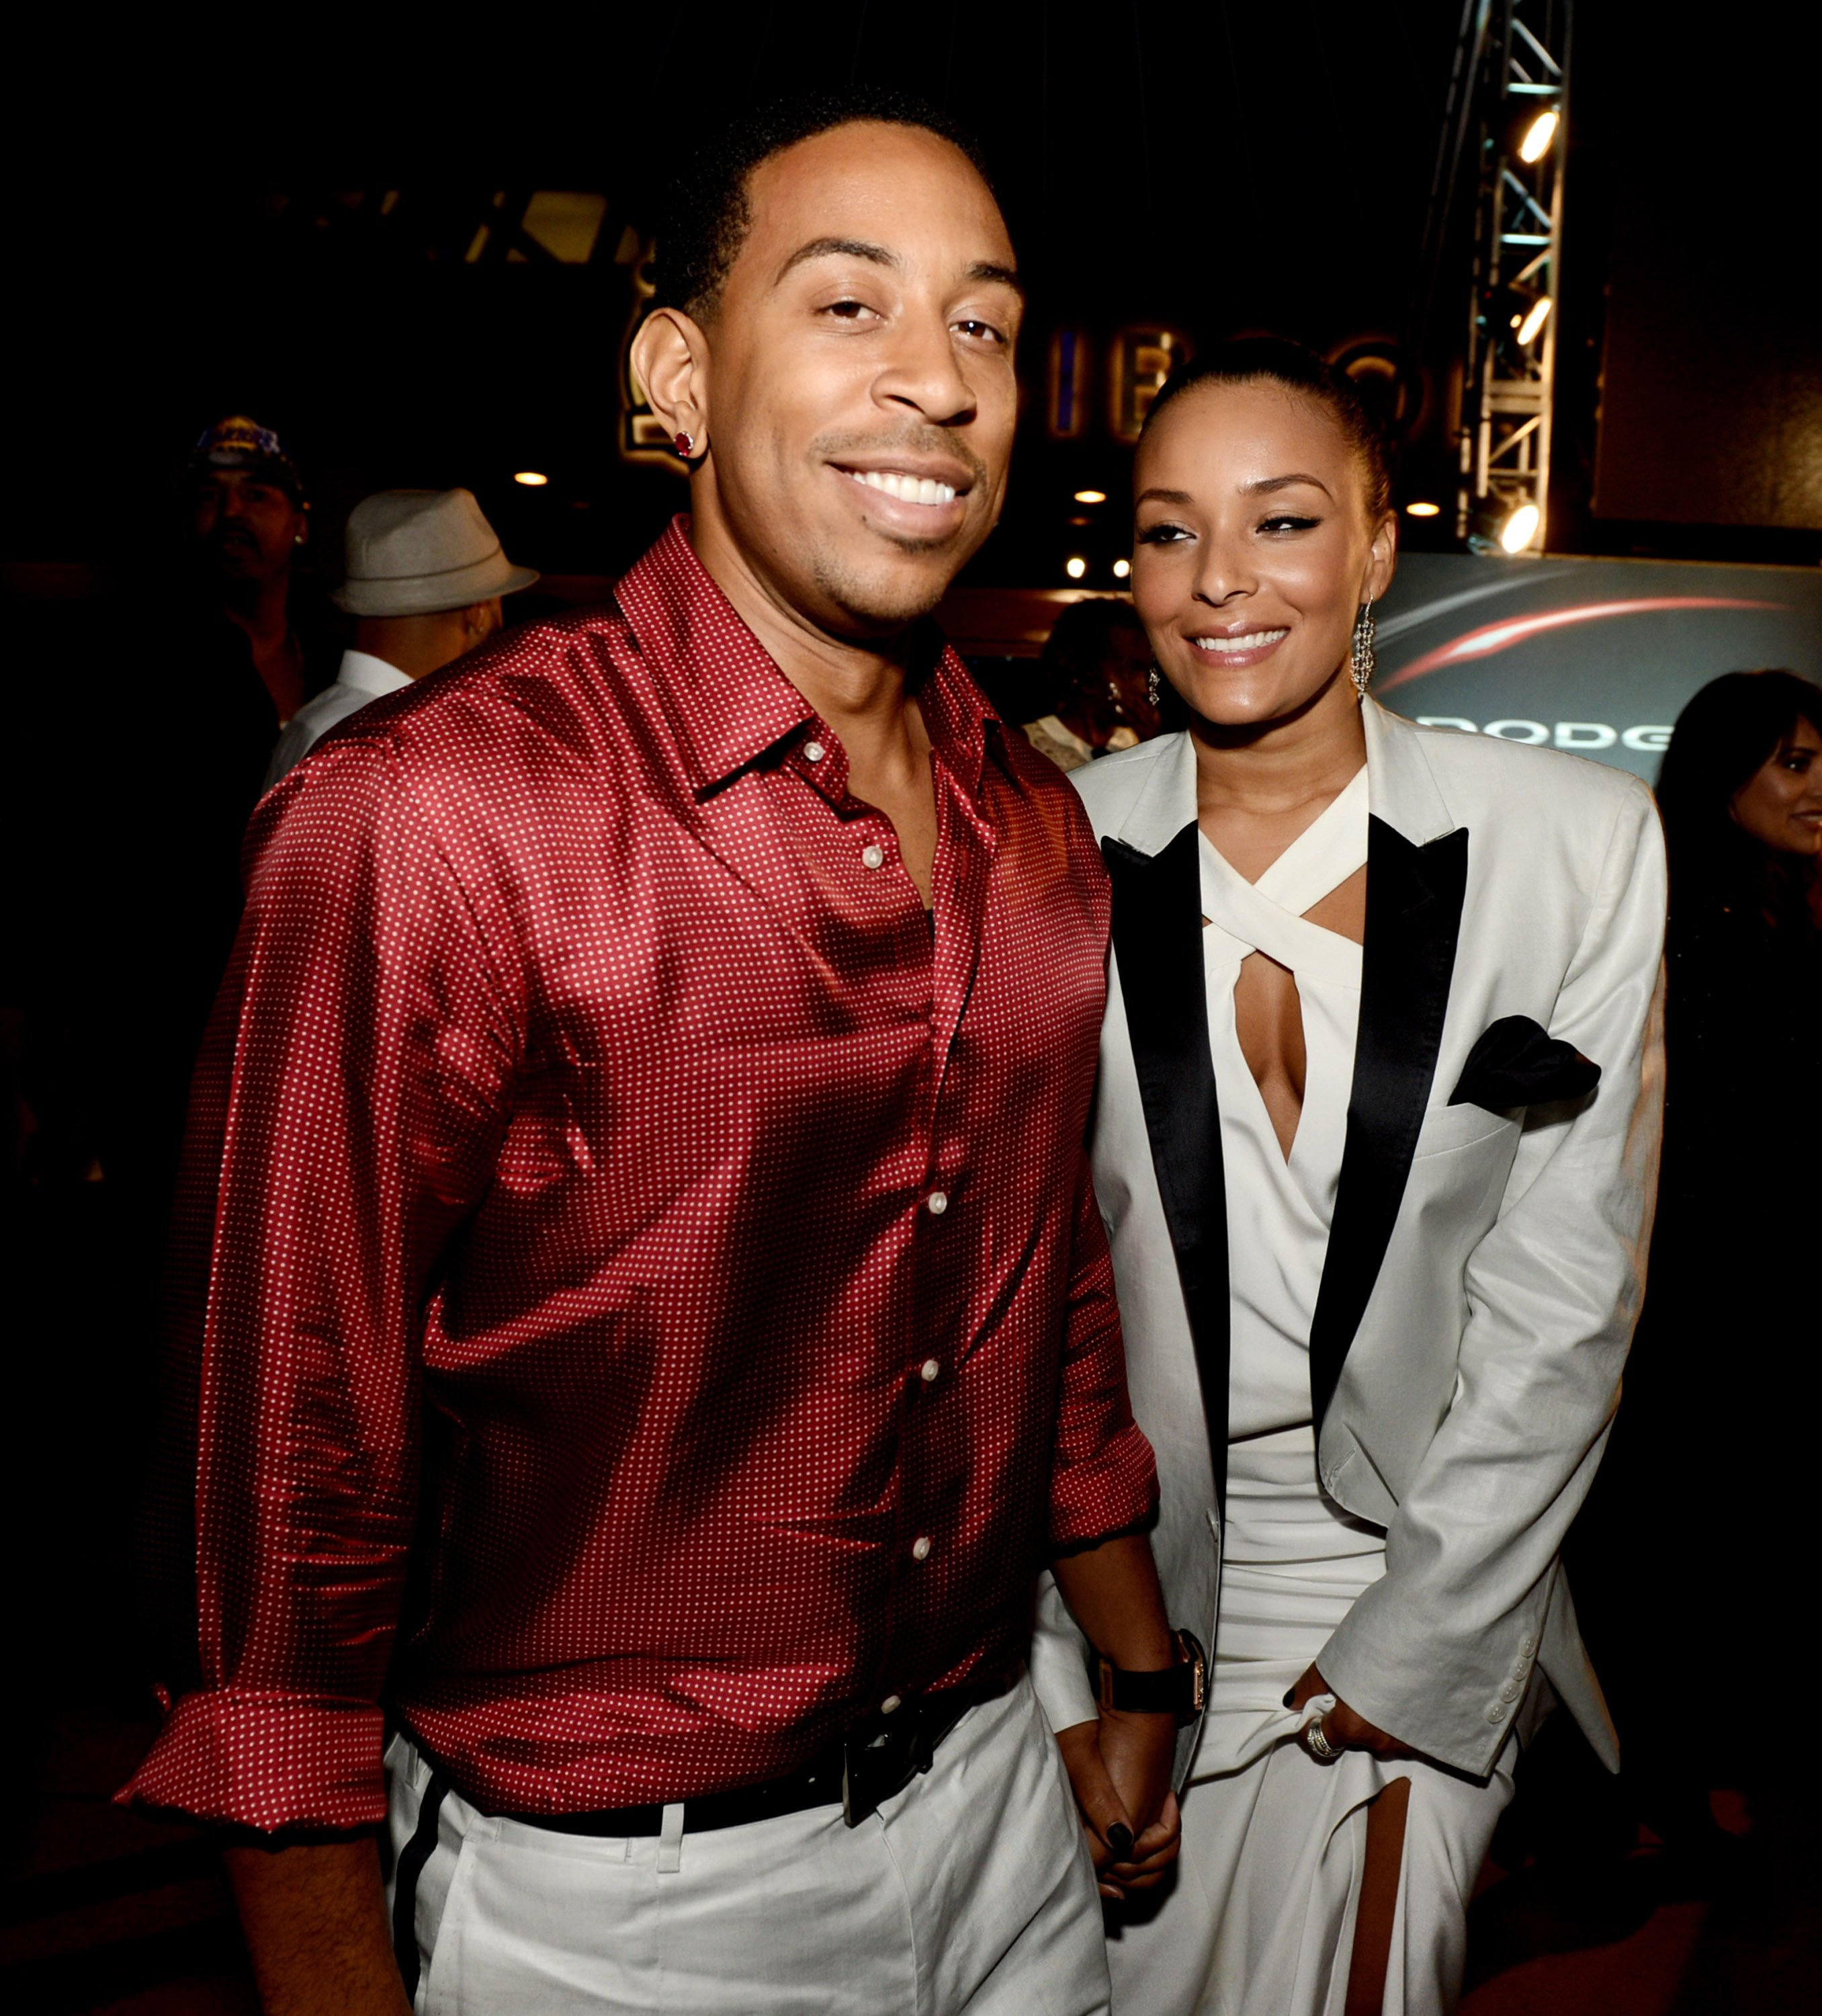 Actor/rapper Chris 'Ludacris' Bridges and his girlfriend Eudoxie arrive at the after party for the premiere of Universal Pictures'  Fast & Furious 6  at the Gibson Amphitheatre on May 21, 2013 in Universal City, California.